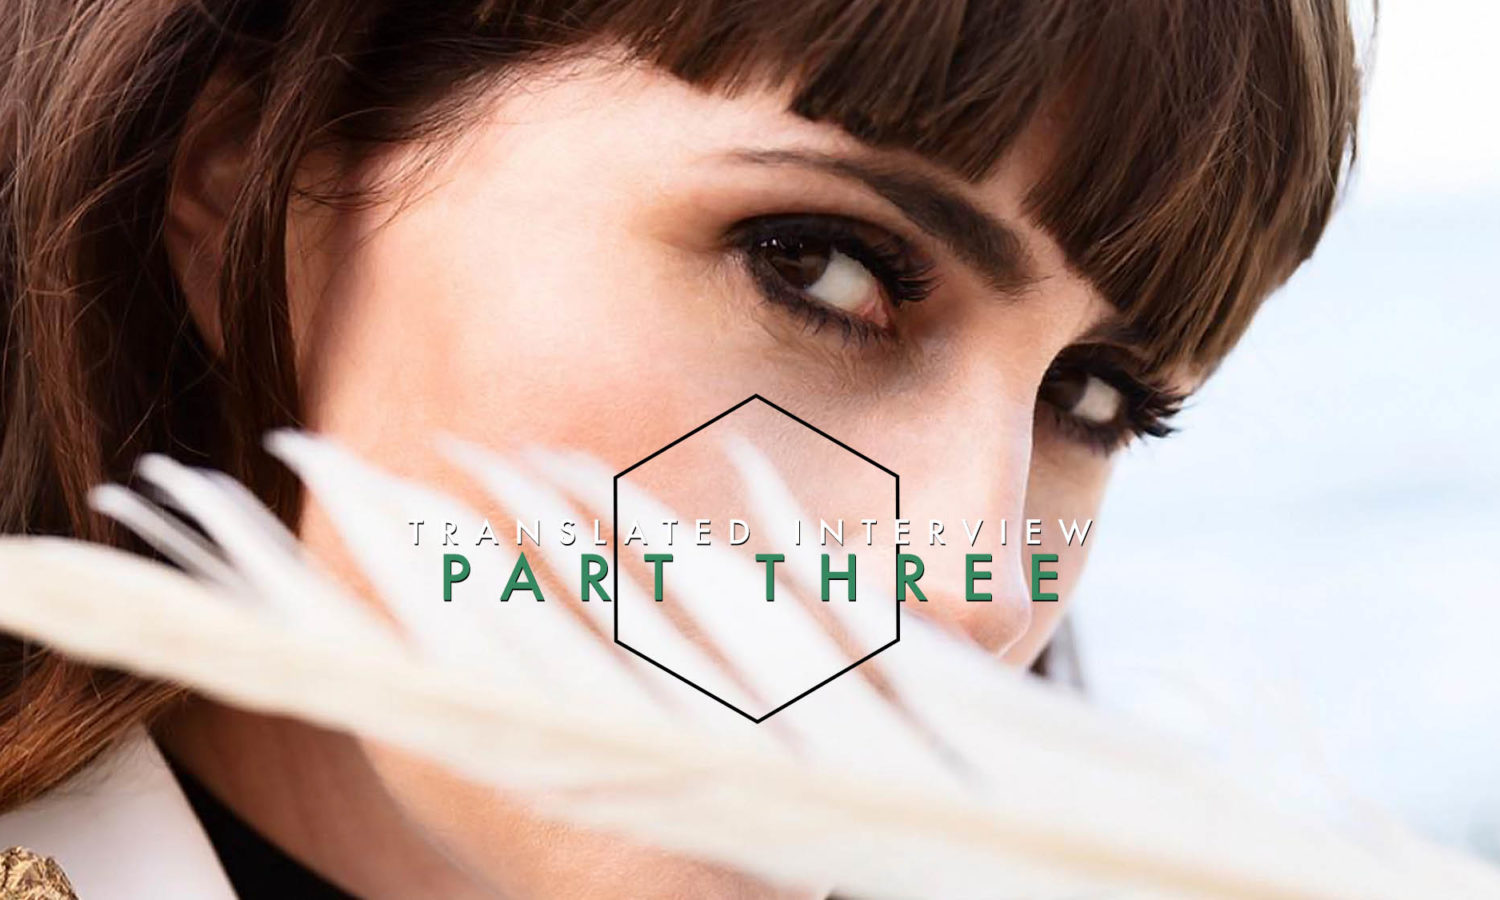 Sharon den Adel Vrouw Glossy Within Temptation Interview 2018 - Part Three